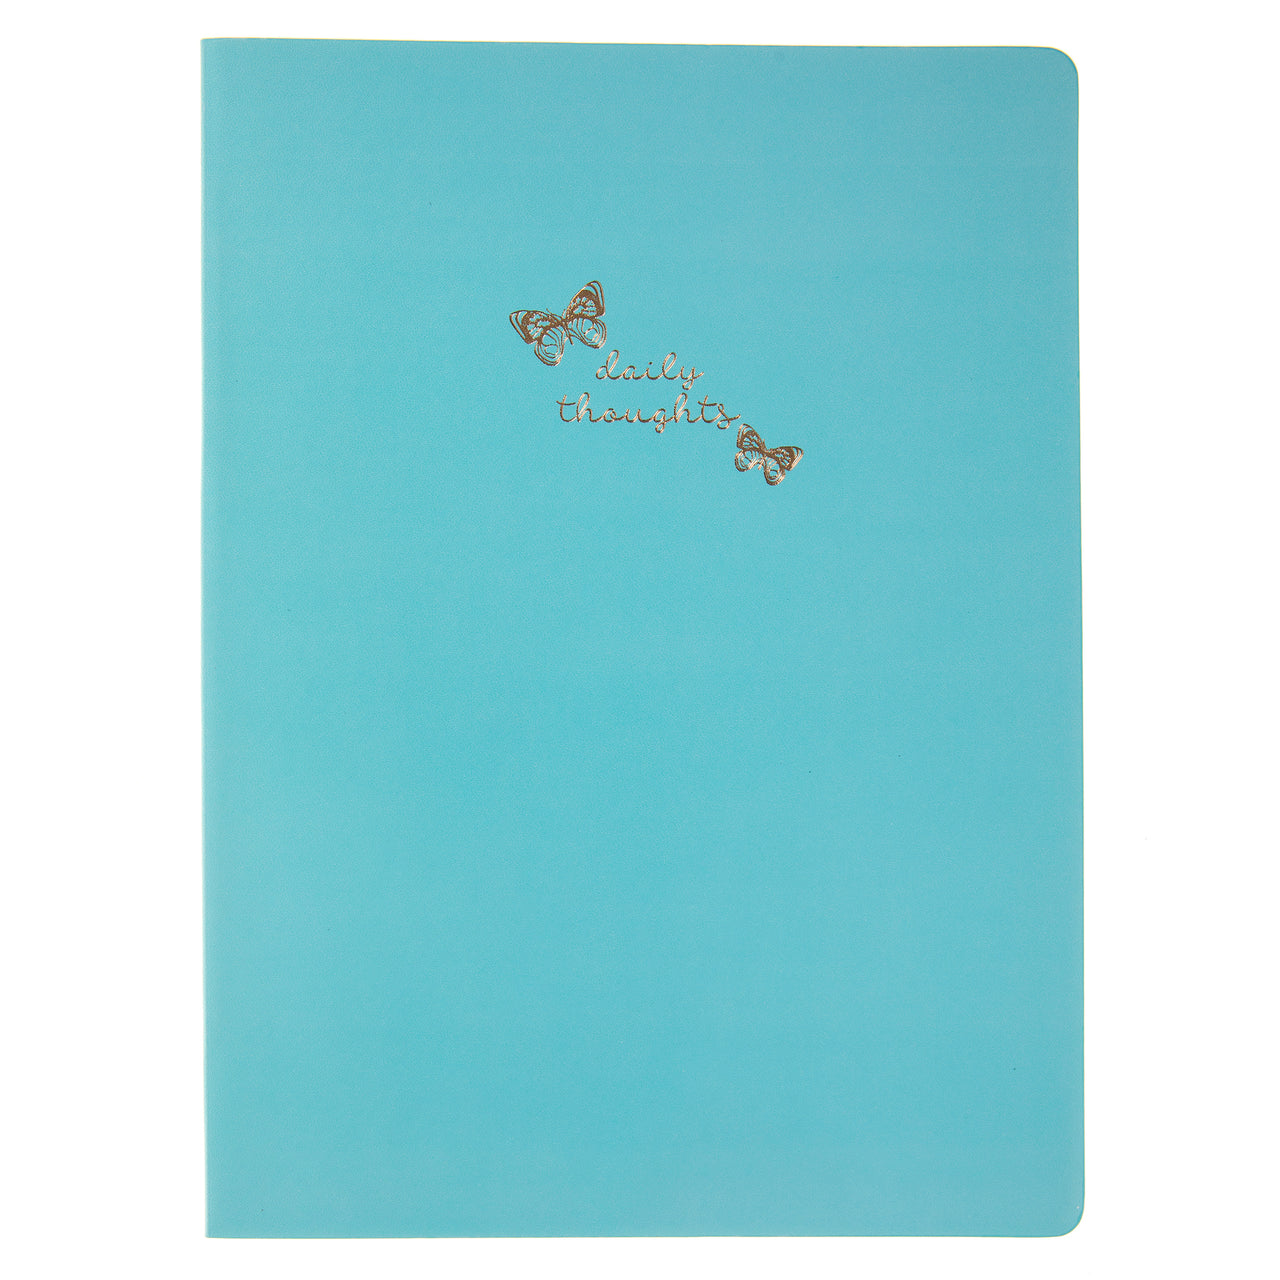 La Petite Presse Collection Butterfly 7x9 Vegan Leather Journal